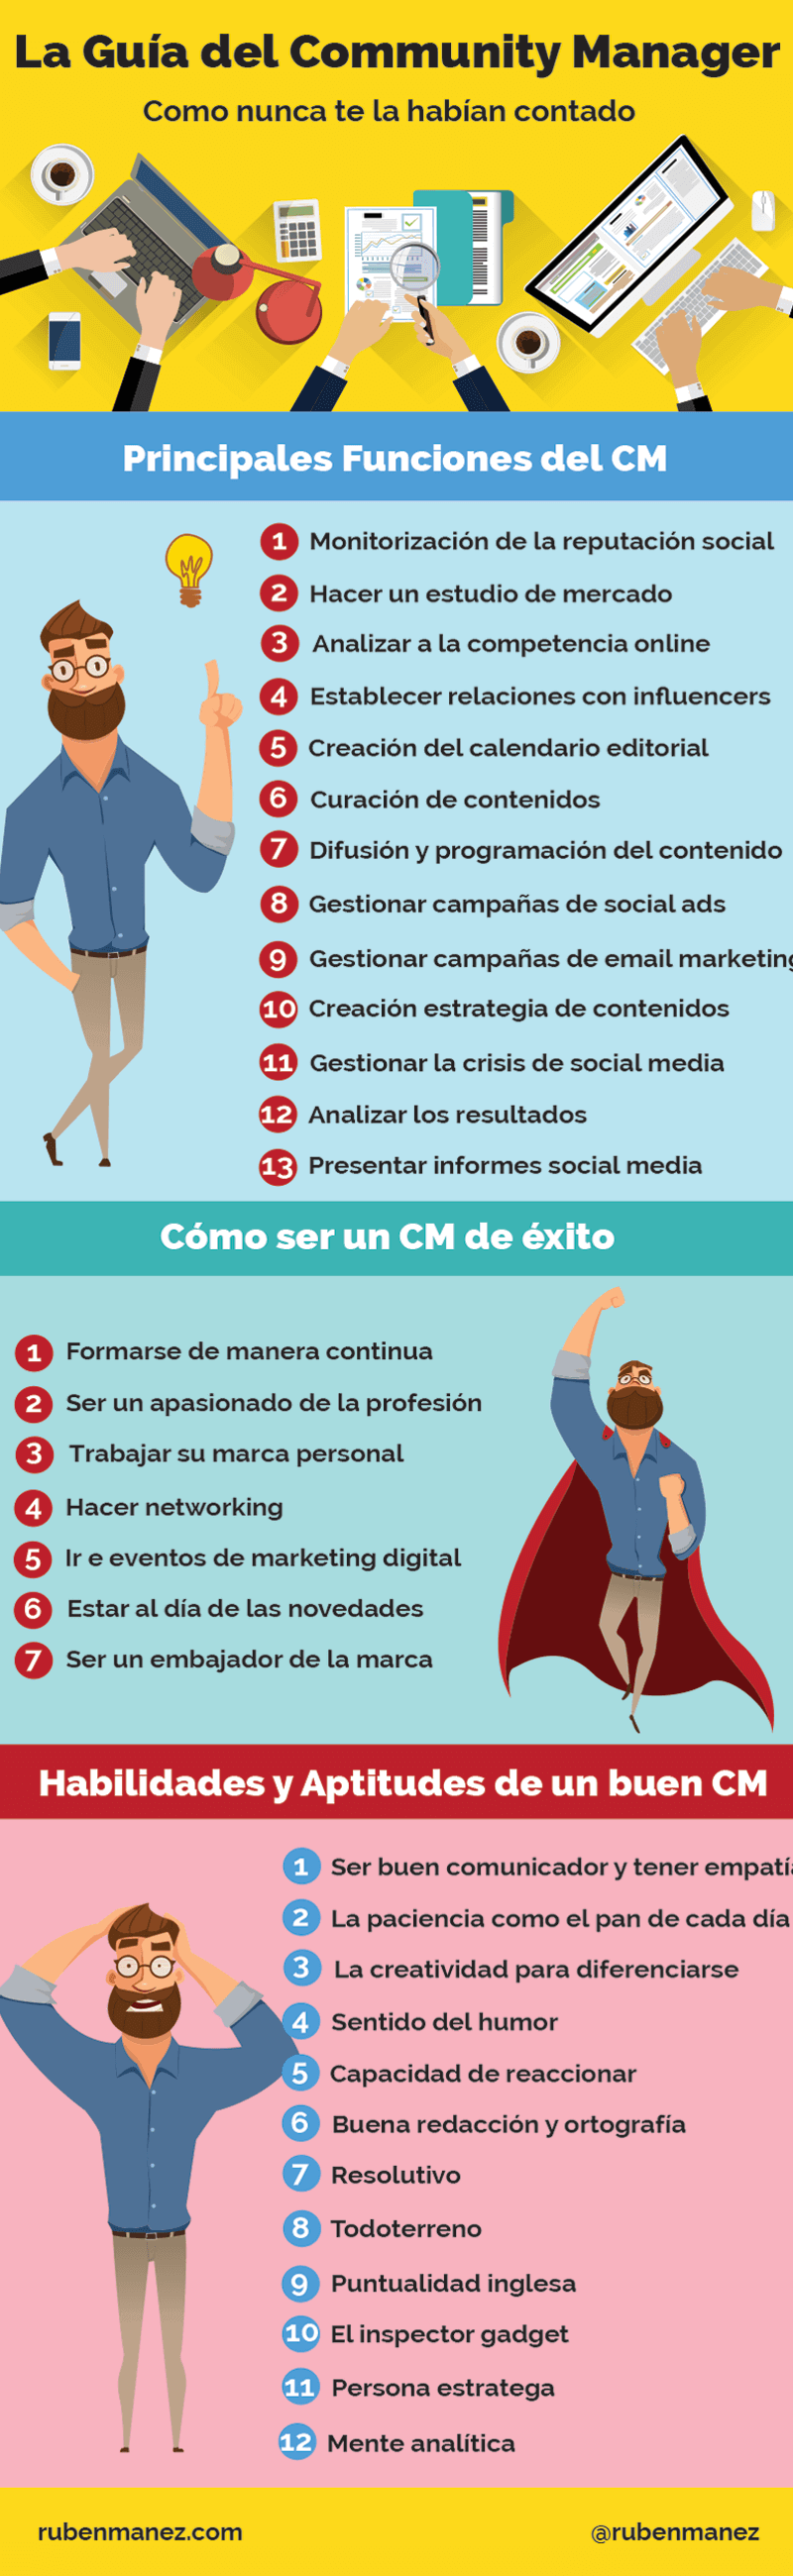 infografia community manager